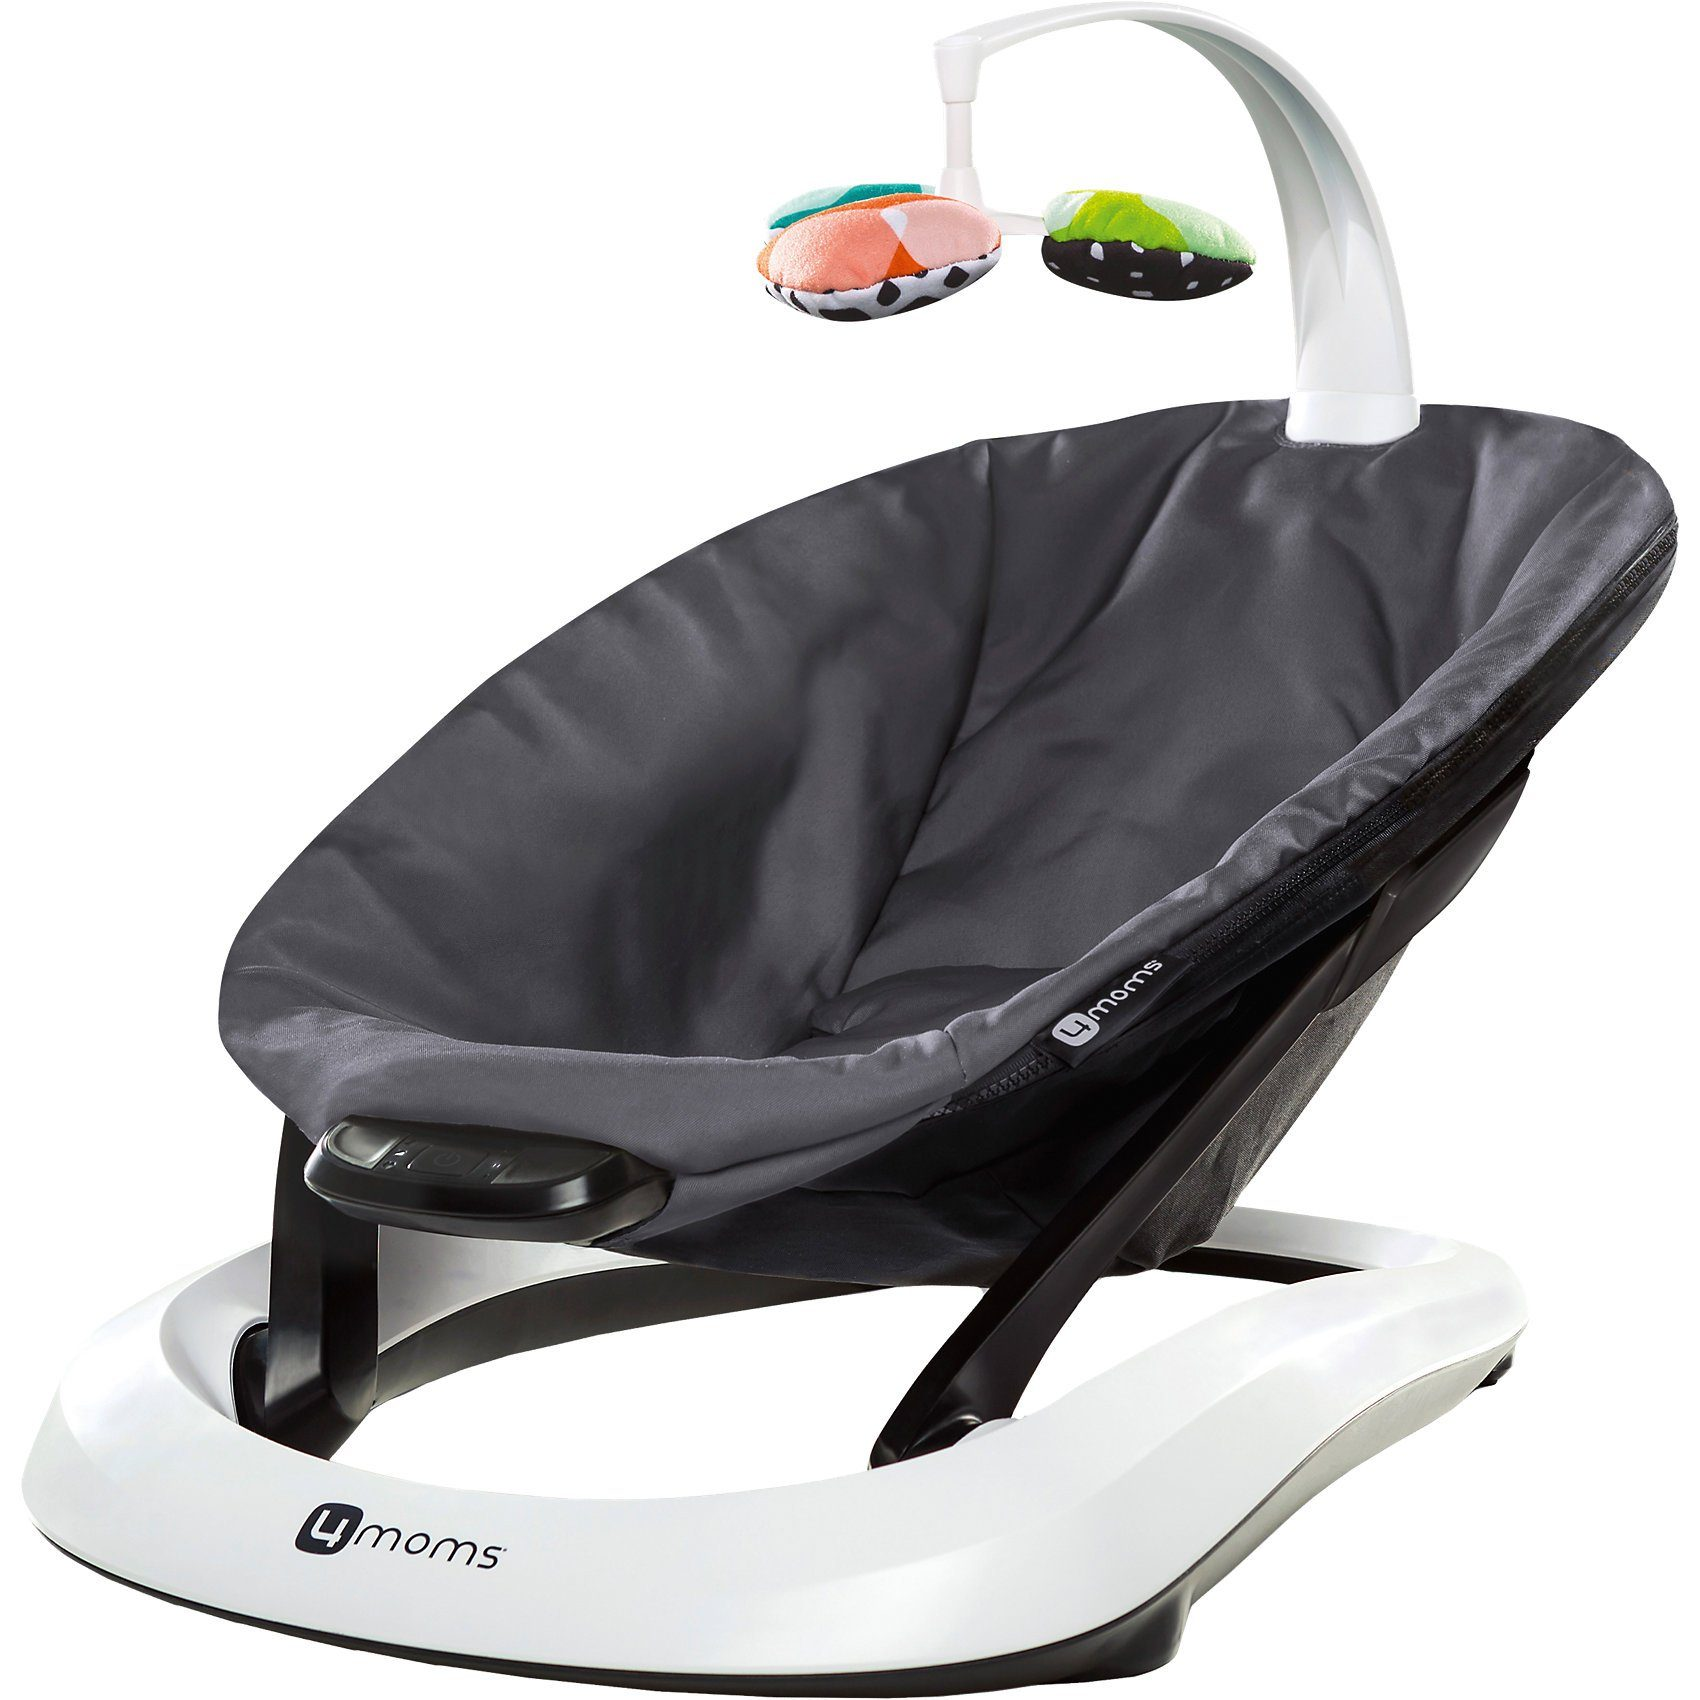 4moms Babyschaukel bounceRoo, Dark Grey